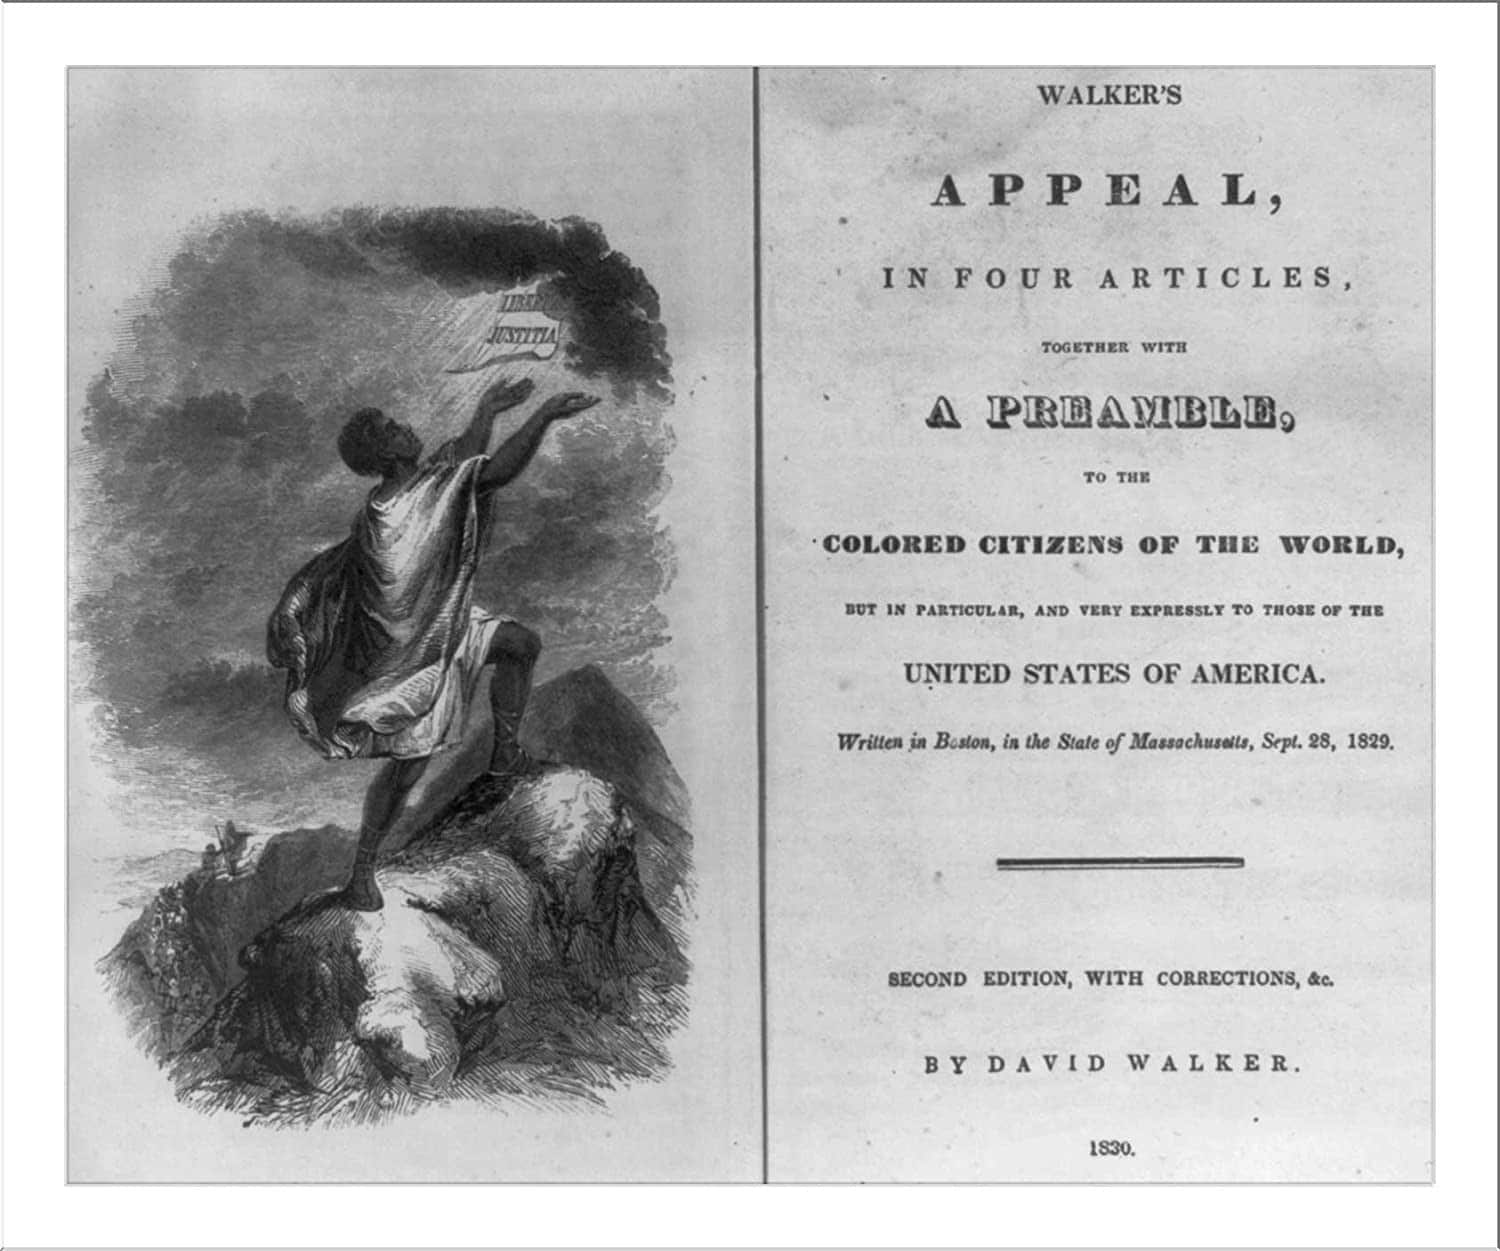 Walker's Appeal in Four Articles, Together with a Preamble. To the Colored Citizens of the World, but in Particular, and Very Expressly, to Those of the United States of America, 1830, image courtesy of the Library of Congress, LC-USZ62-63775.